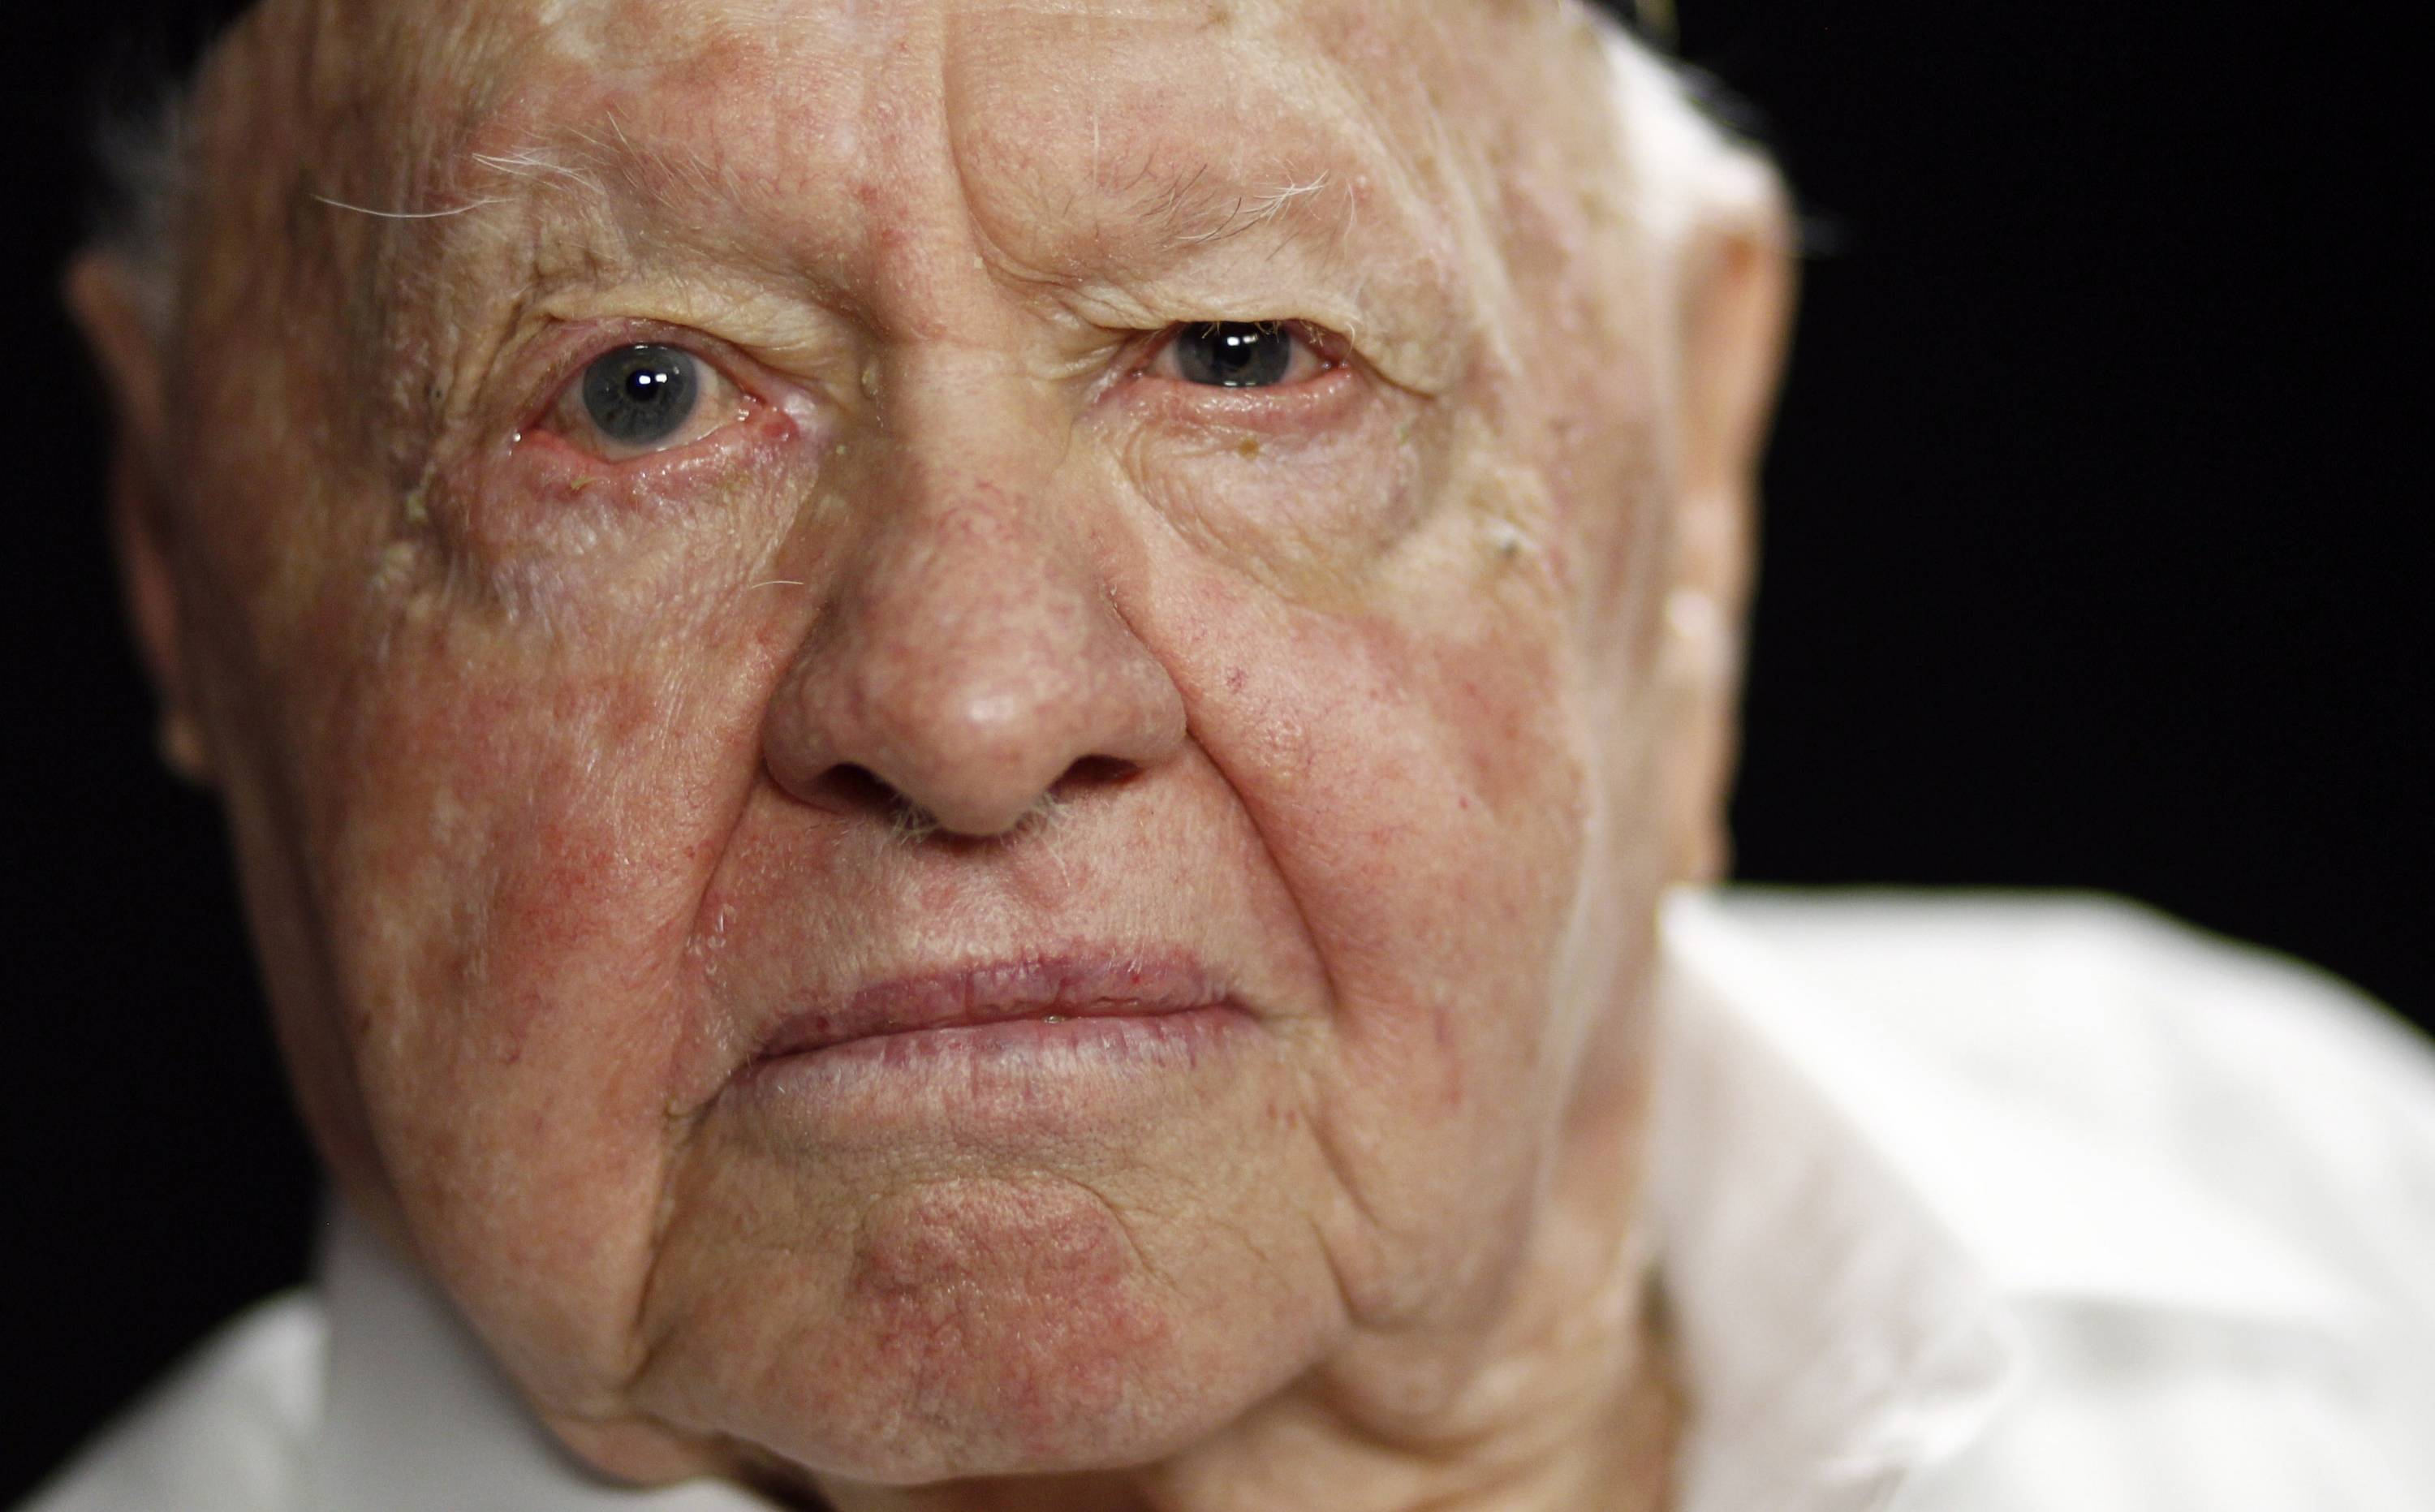 Actor Mickey Rooney, a Hollywood legend whose career spanned more than 80 years, has died. He was 93. Los Angeles Police Cmdr. Andrew Smith said that Rooney was with his family when he died Sunday at his North Hollywood home.